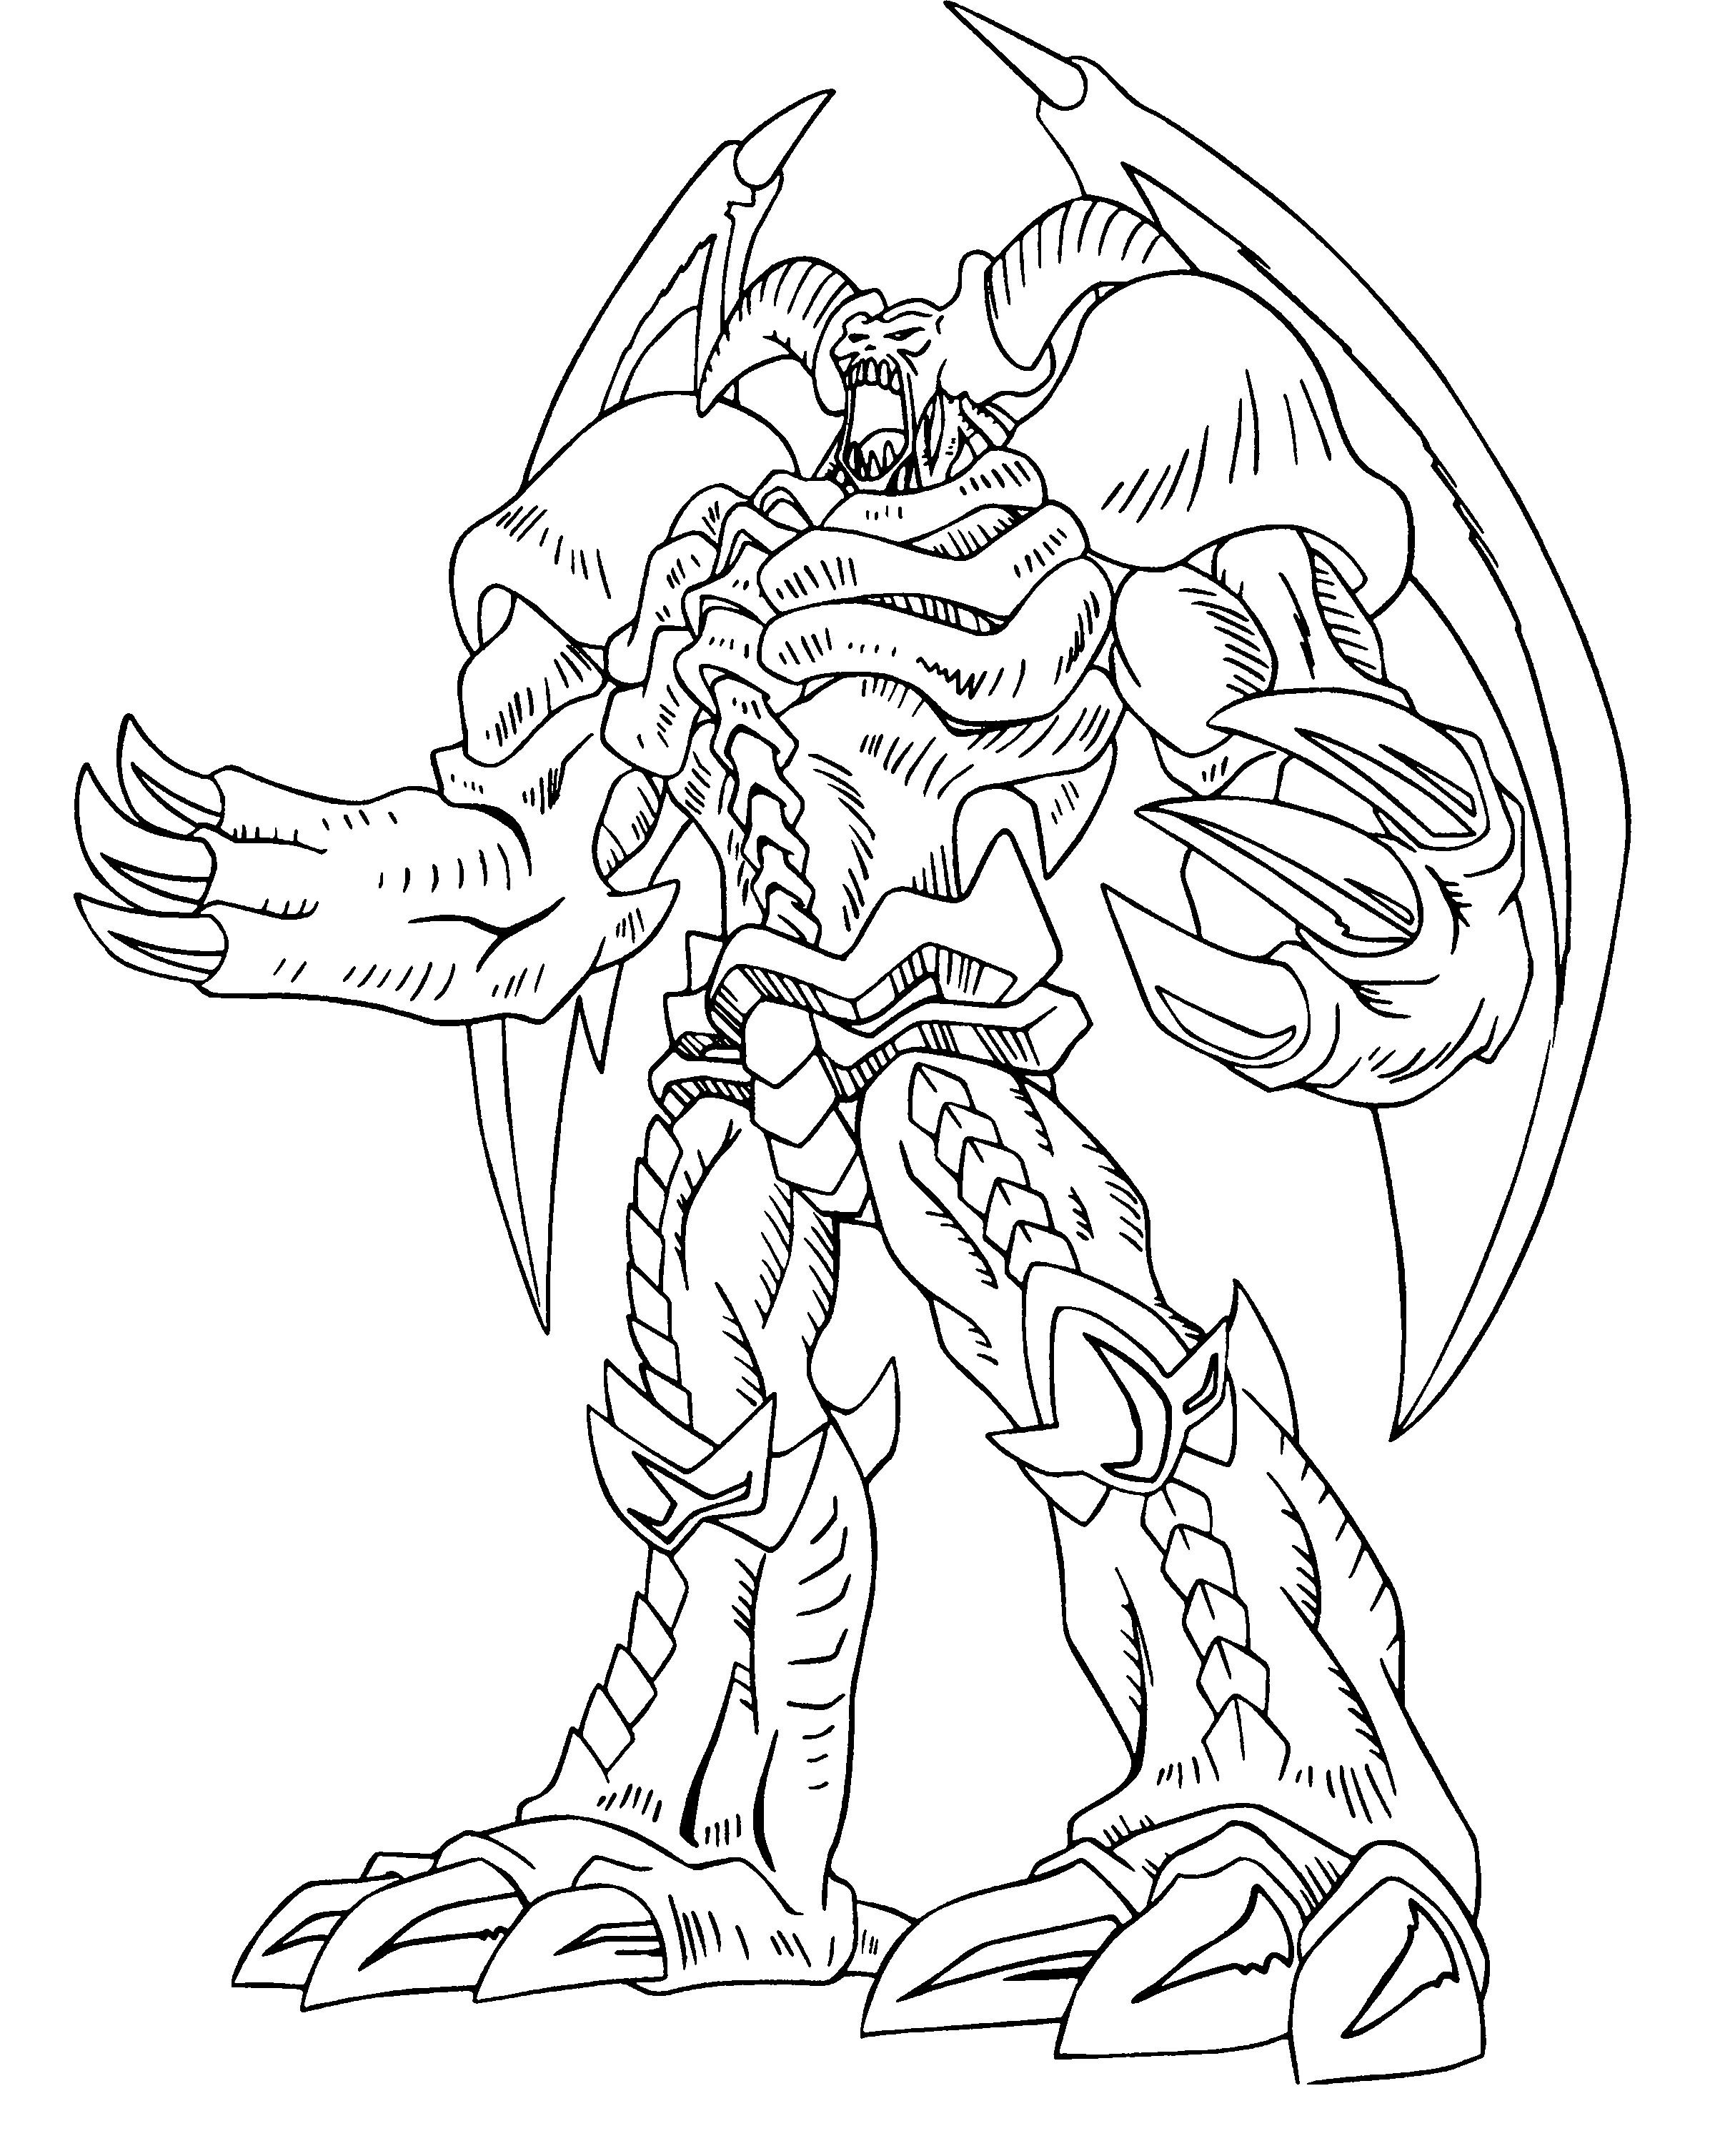 Yu Gi Oh Great Power Coloring Pages Dragon Coloring Page Monster Coloring Pages Cartoon Coloring Pages